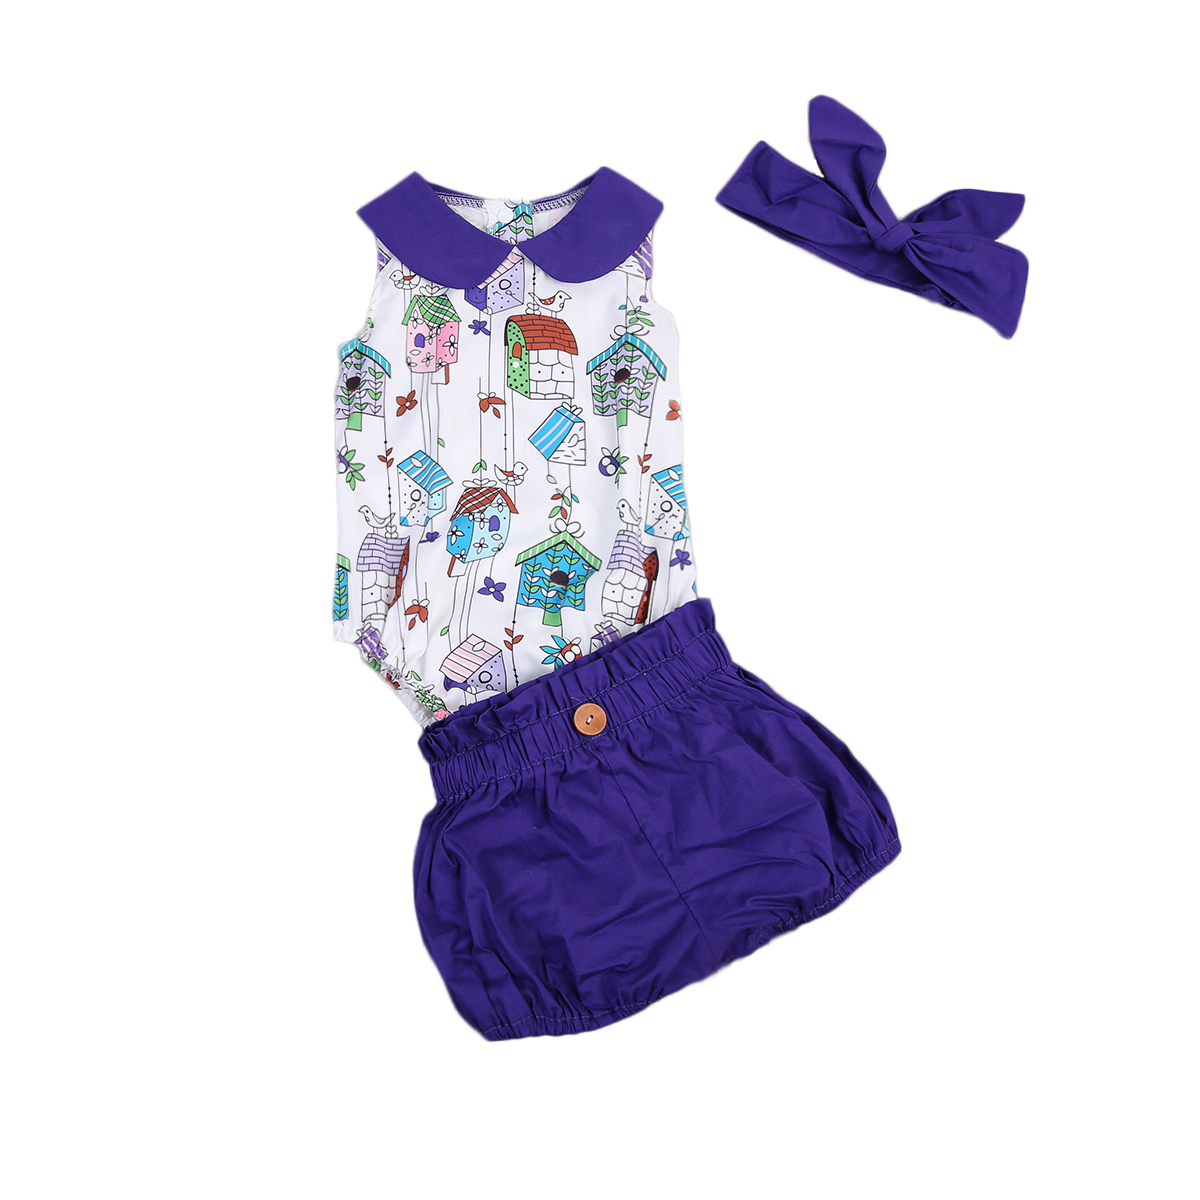 Cute Infant Baby Kids Girls Clothes Top Romper T-shirt Headband Pants Outfit Set Summer Clothing Toddler Girl 2PCS Clothing Set flower sleeveless vest t shirt tops vest shorts pants outfit girl clothes set 2pcs baby children girls kids clothing bow knot